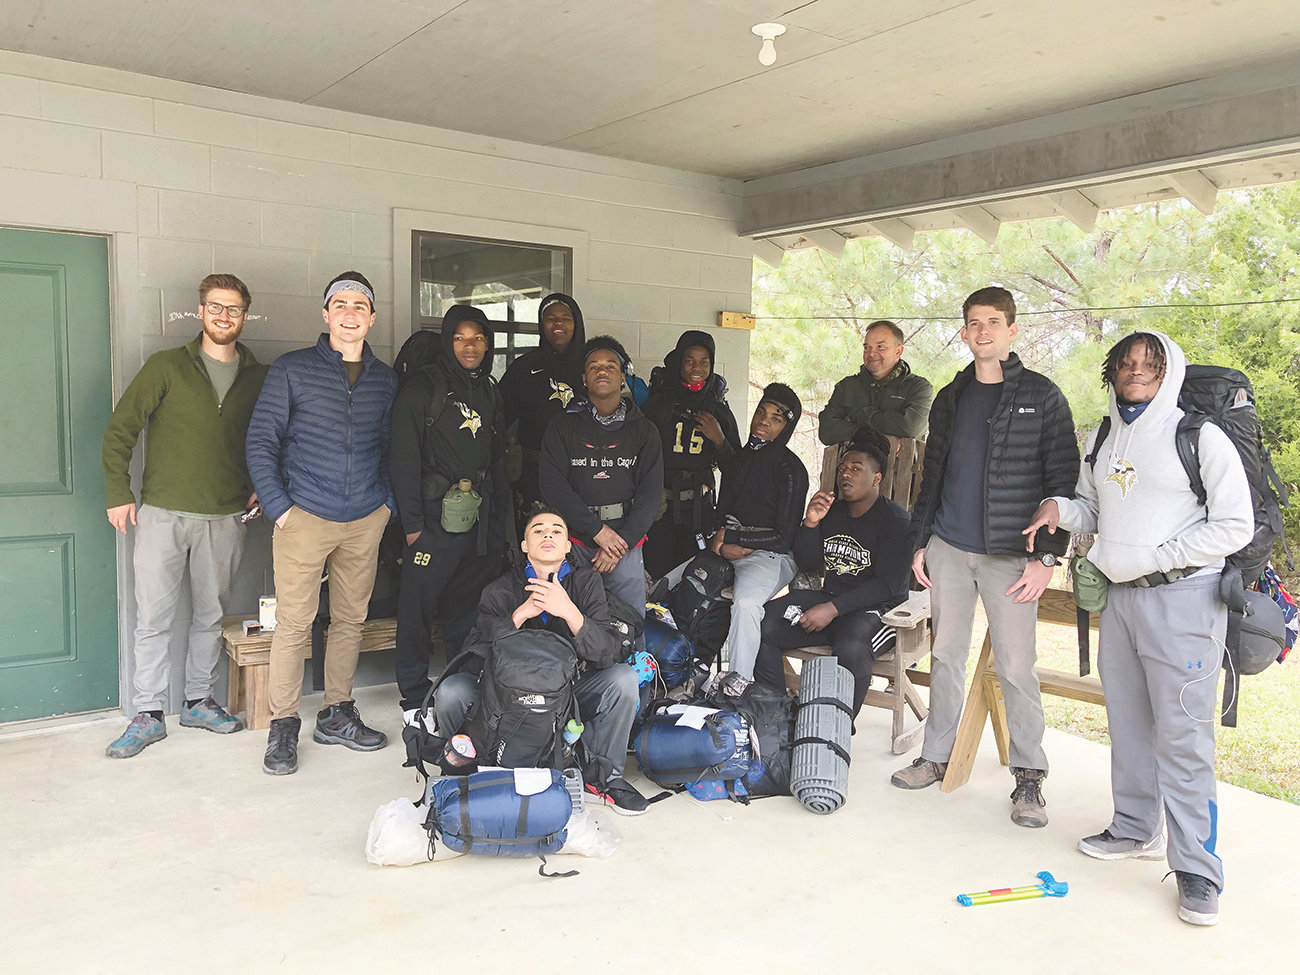 Nine students from Jasper High School were part of the Venture Out pilot program between Jasper High School and Camp McDowell using wilderness backpacking as a backdrop to grow strong leaders in the school and in the community.